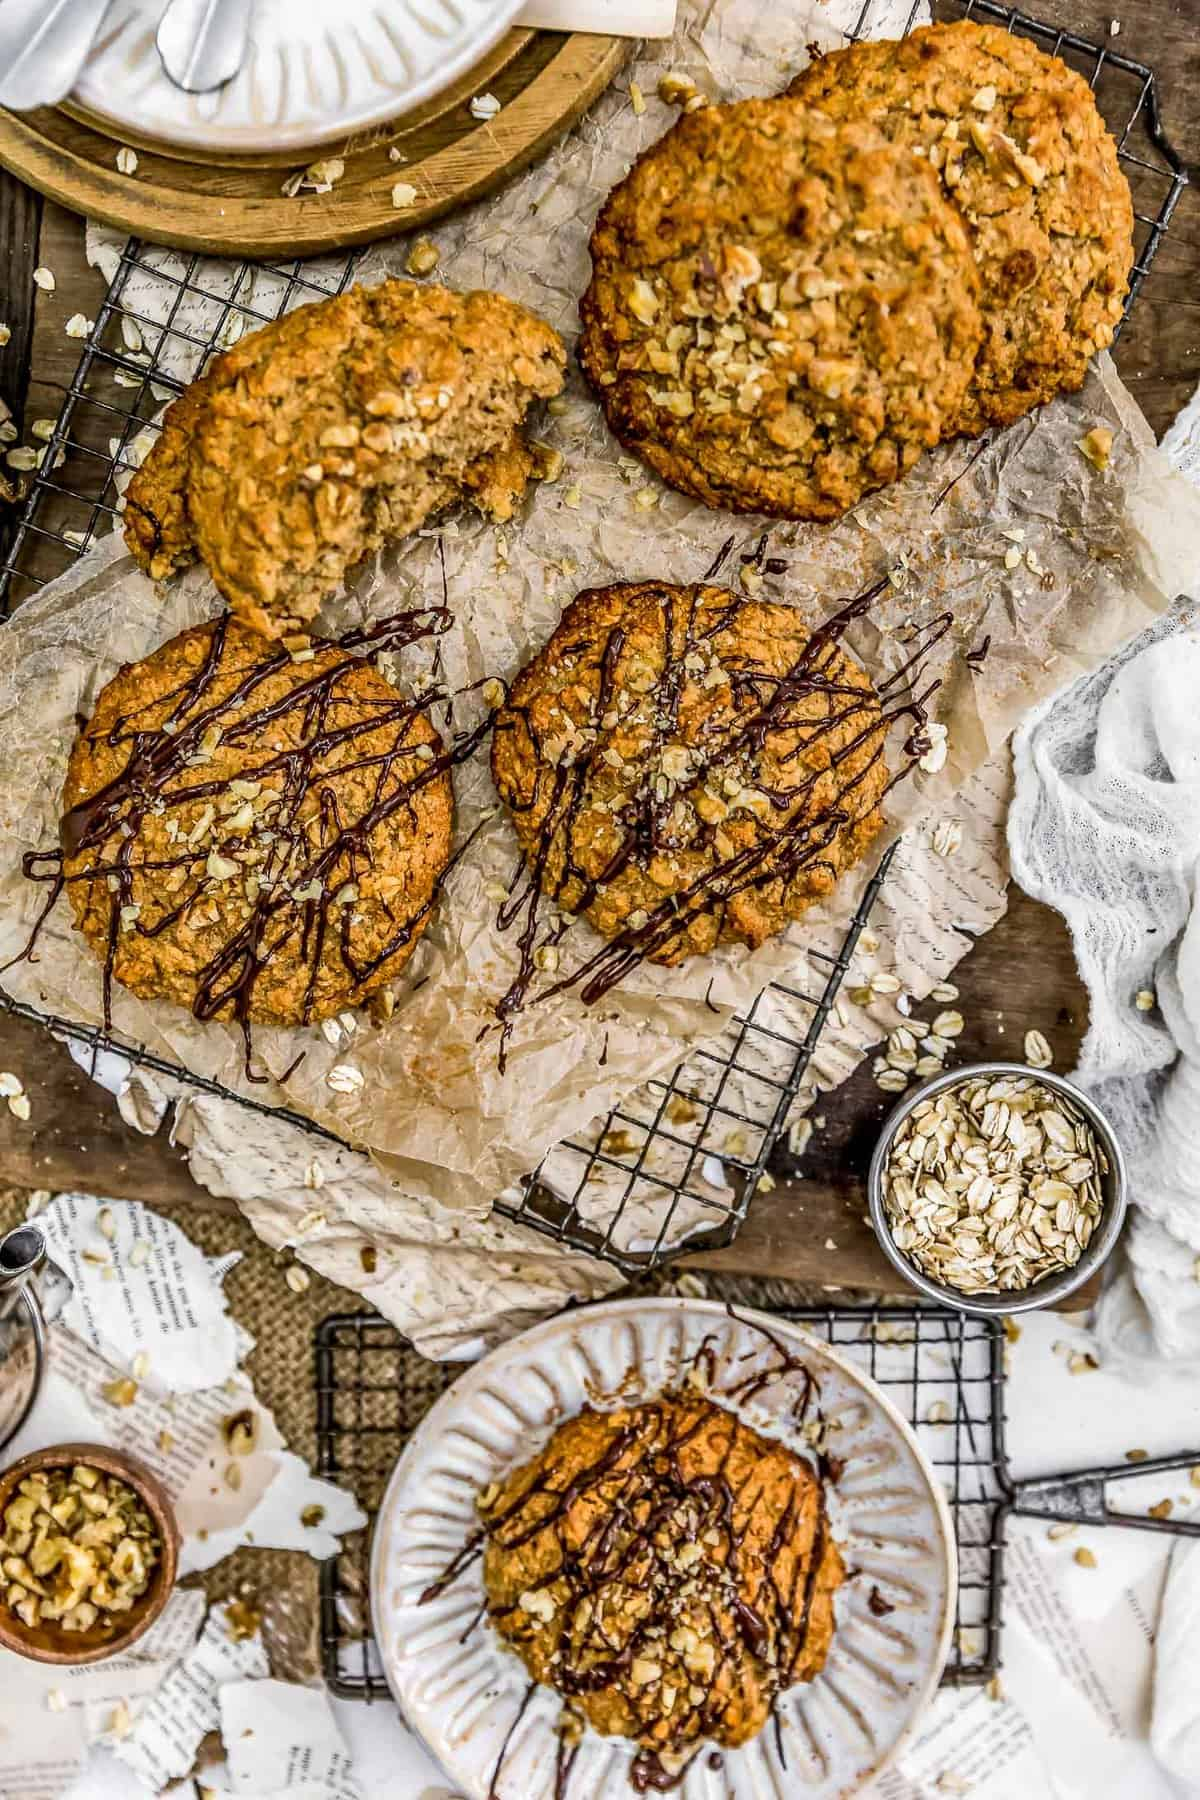 Tablescape of Peanut Butter Banana Cookie Scones